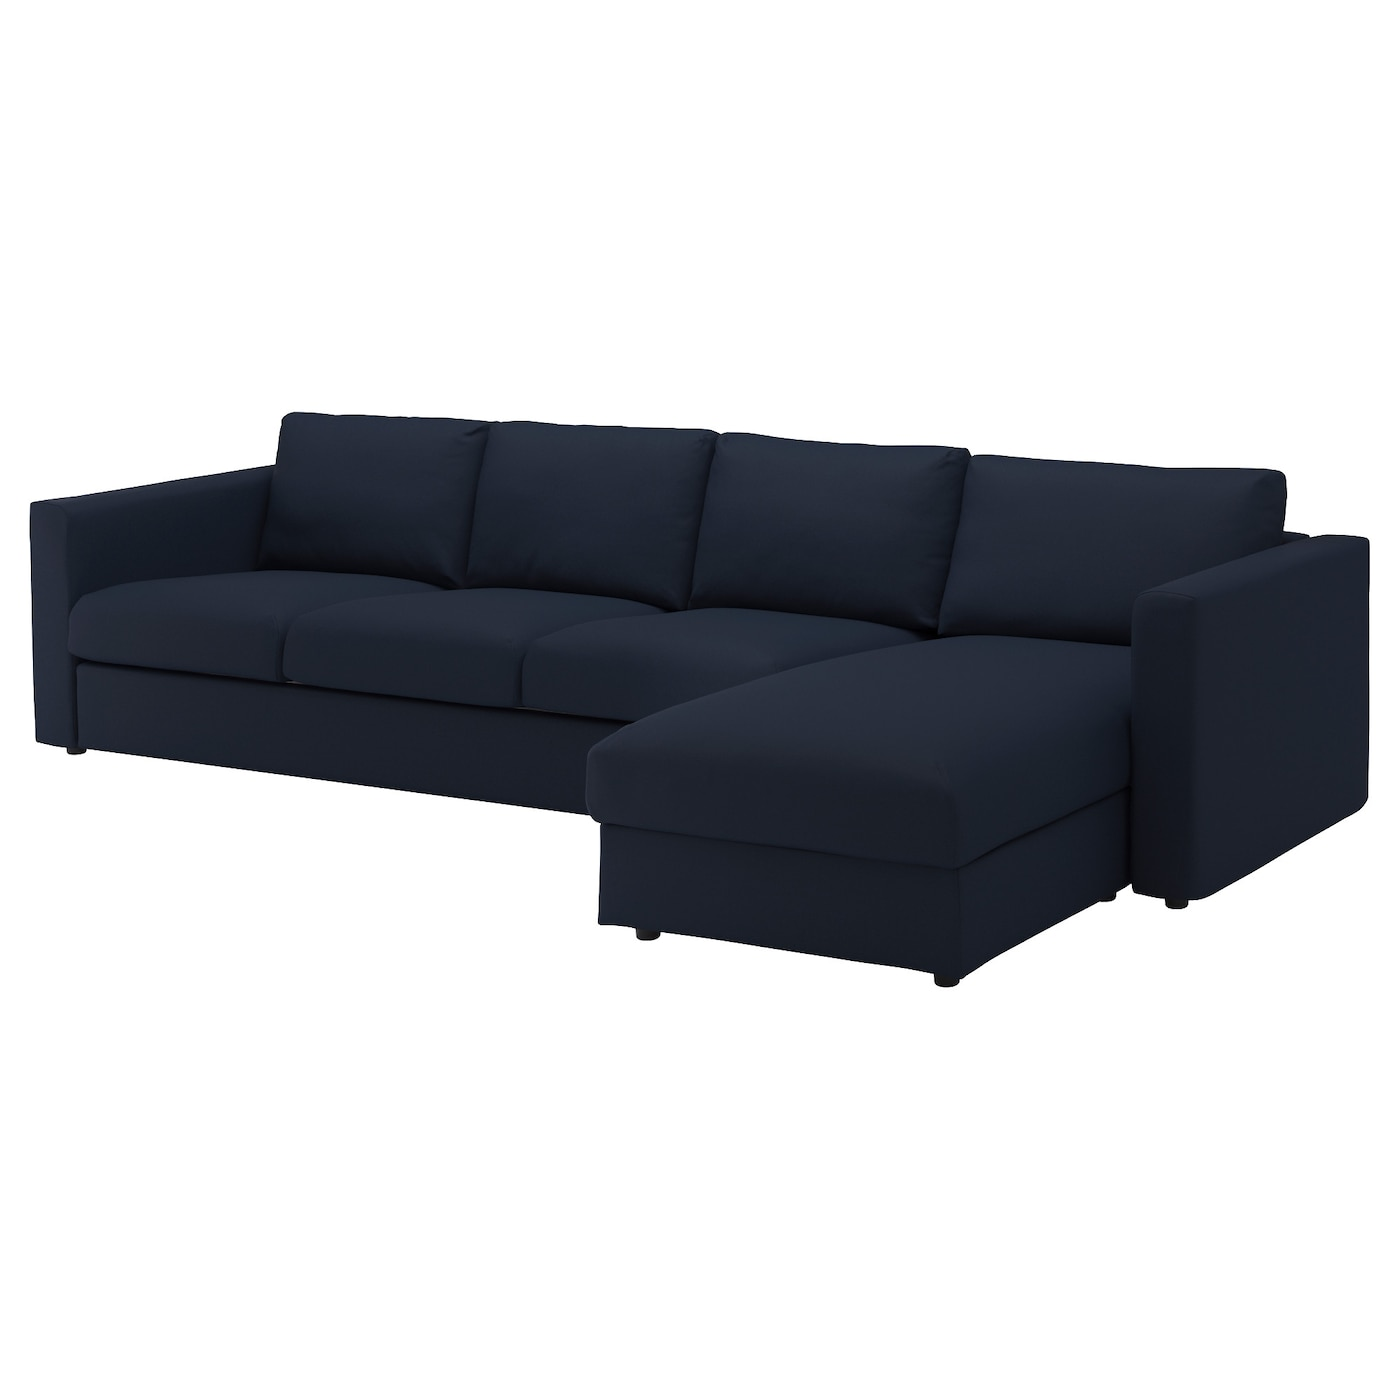 IKEA VIMLE 4-seat sofa The cover is easy to keep clean since it is removable and machine washable.